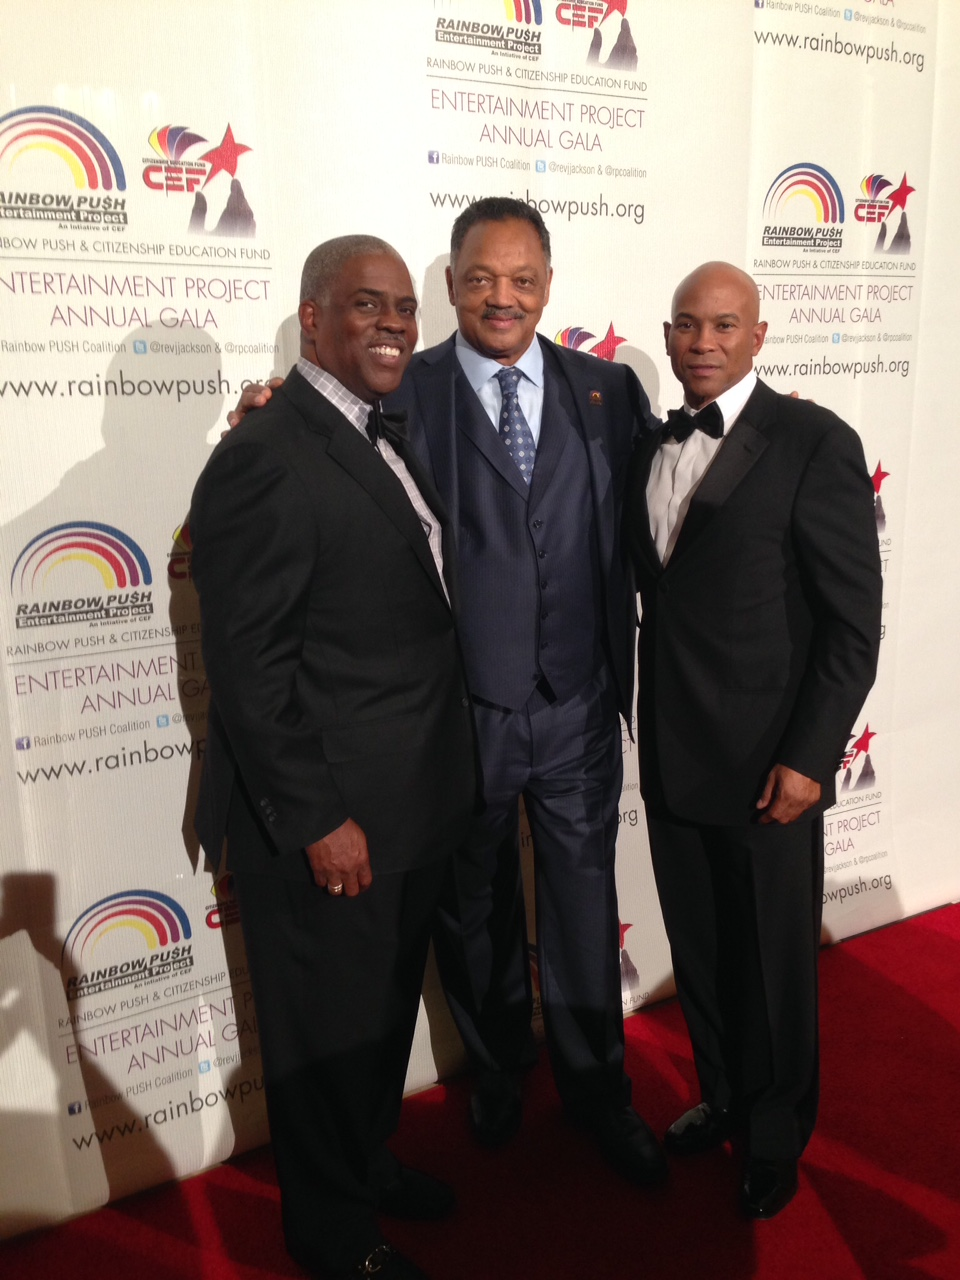 Professor Mark T. Harris, Esq. with The Honorable Allen W. Warren and The Honorable Reverend Jesse L. Jackson, Sr.